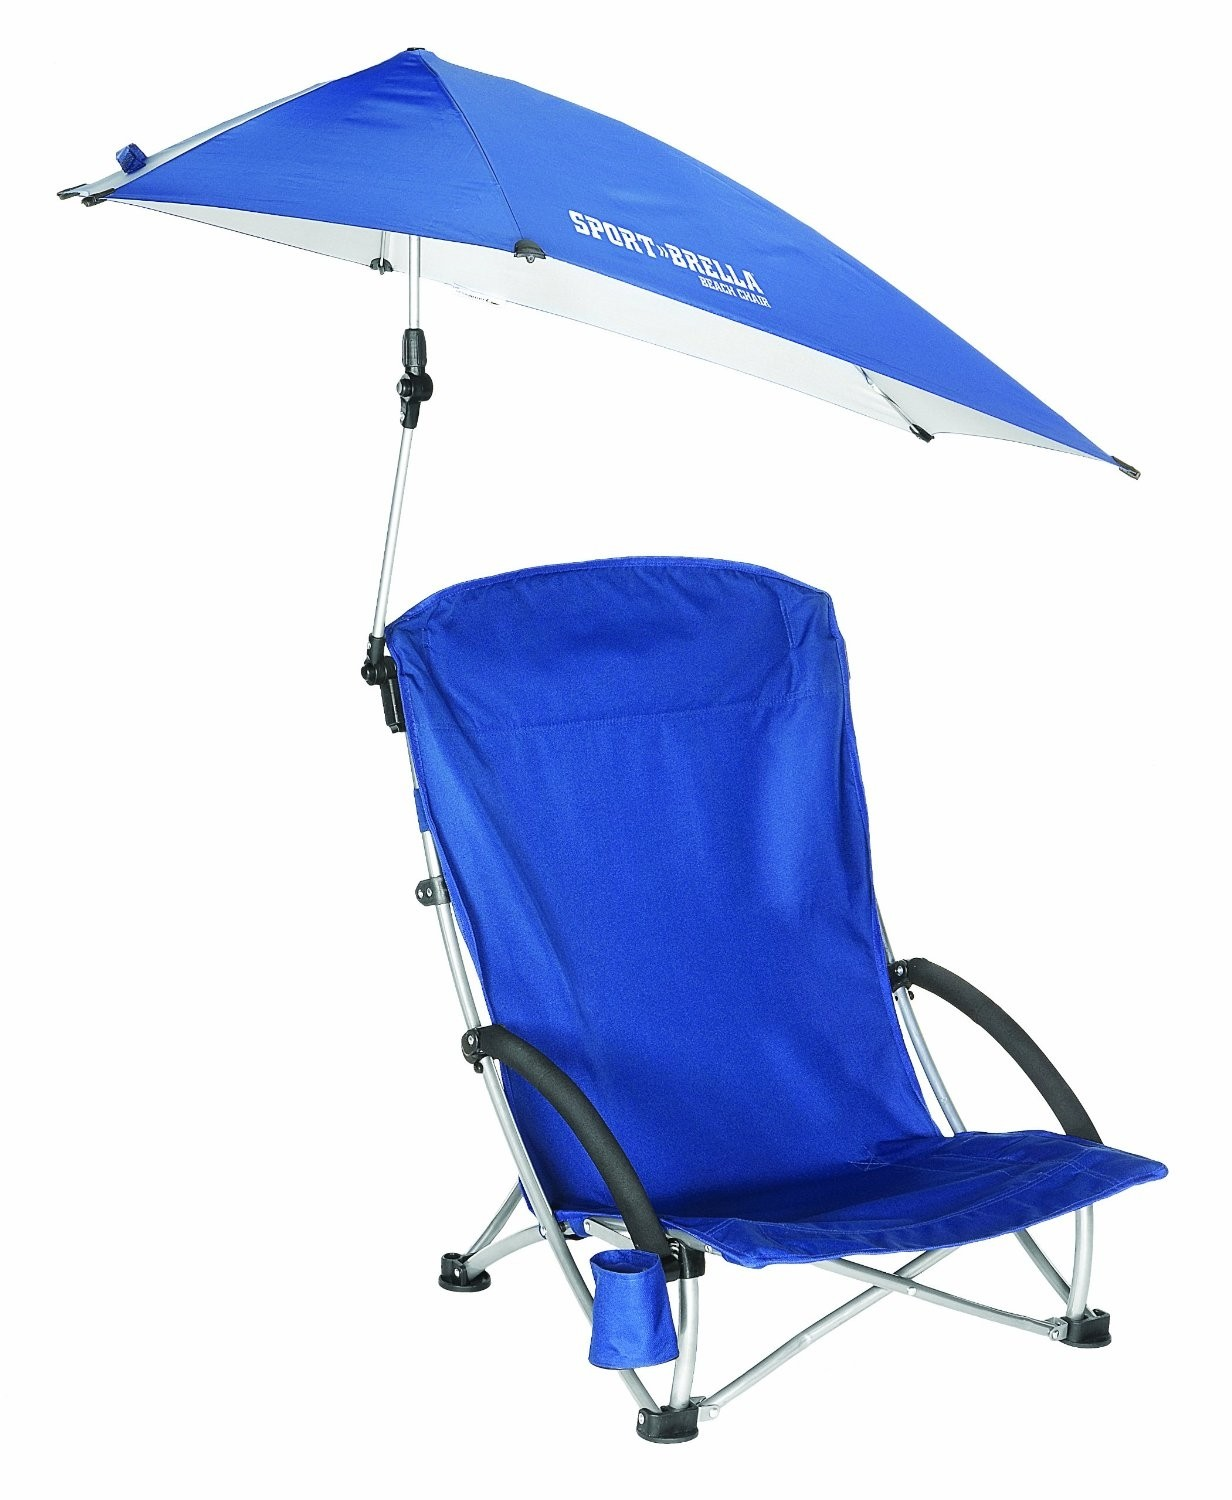 beach chairs with shade office chair elbow pads 50 best lightweight portable folding ideas on foter 1